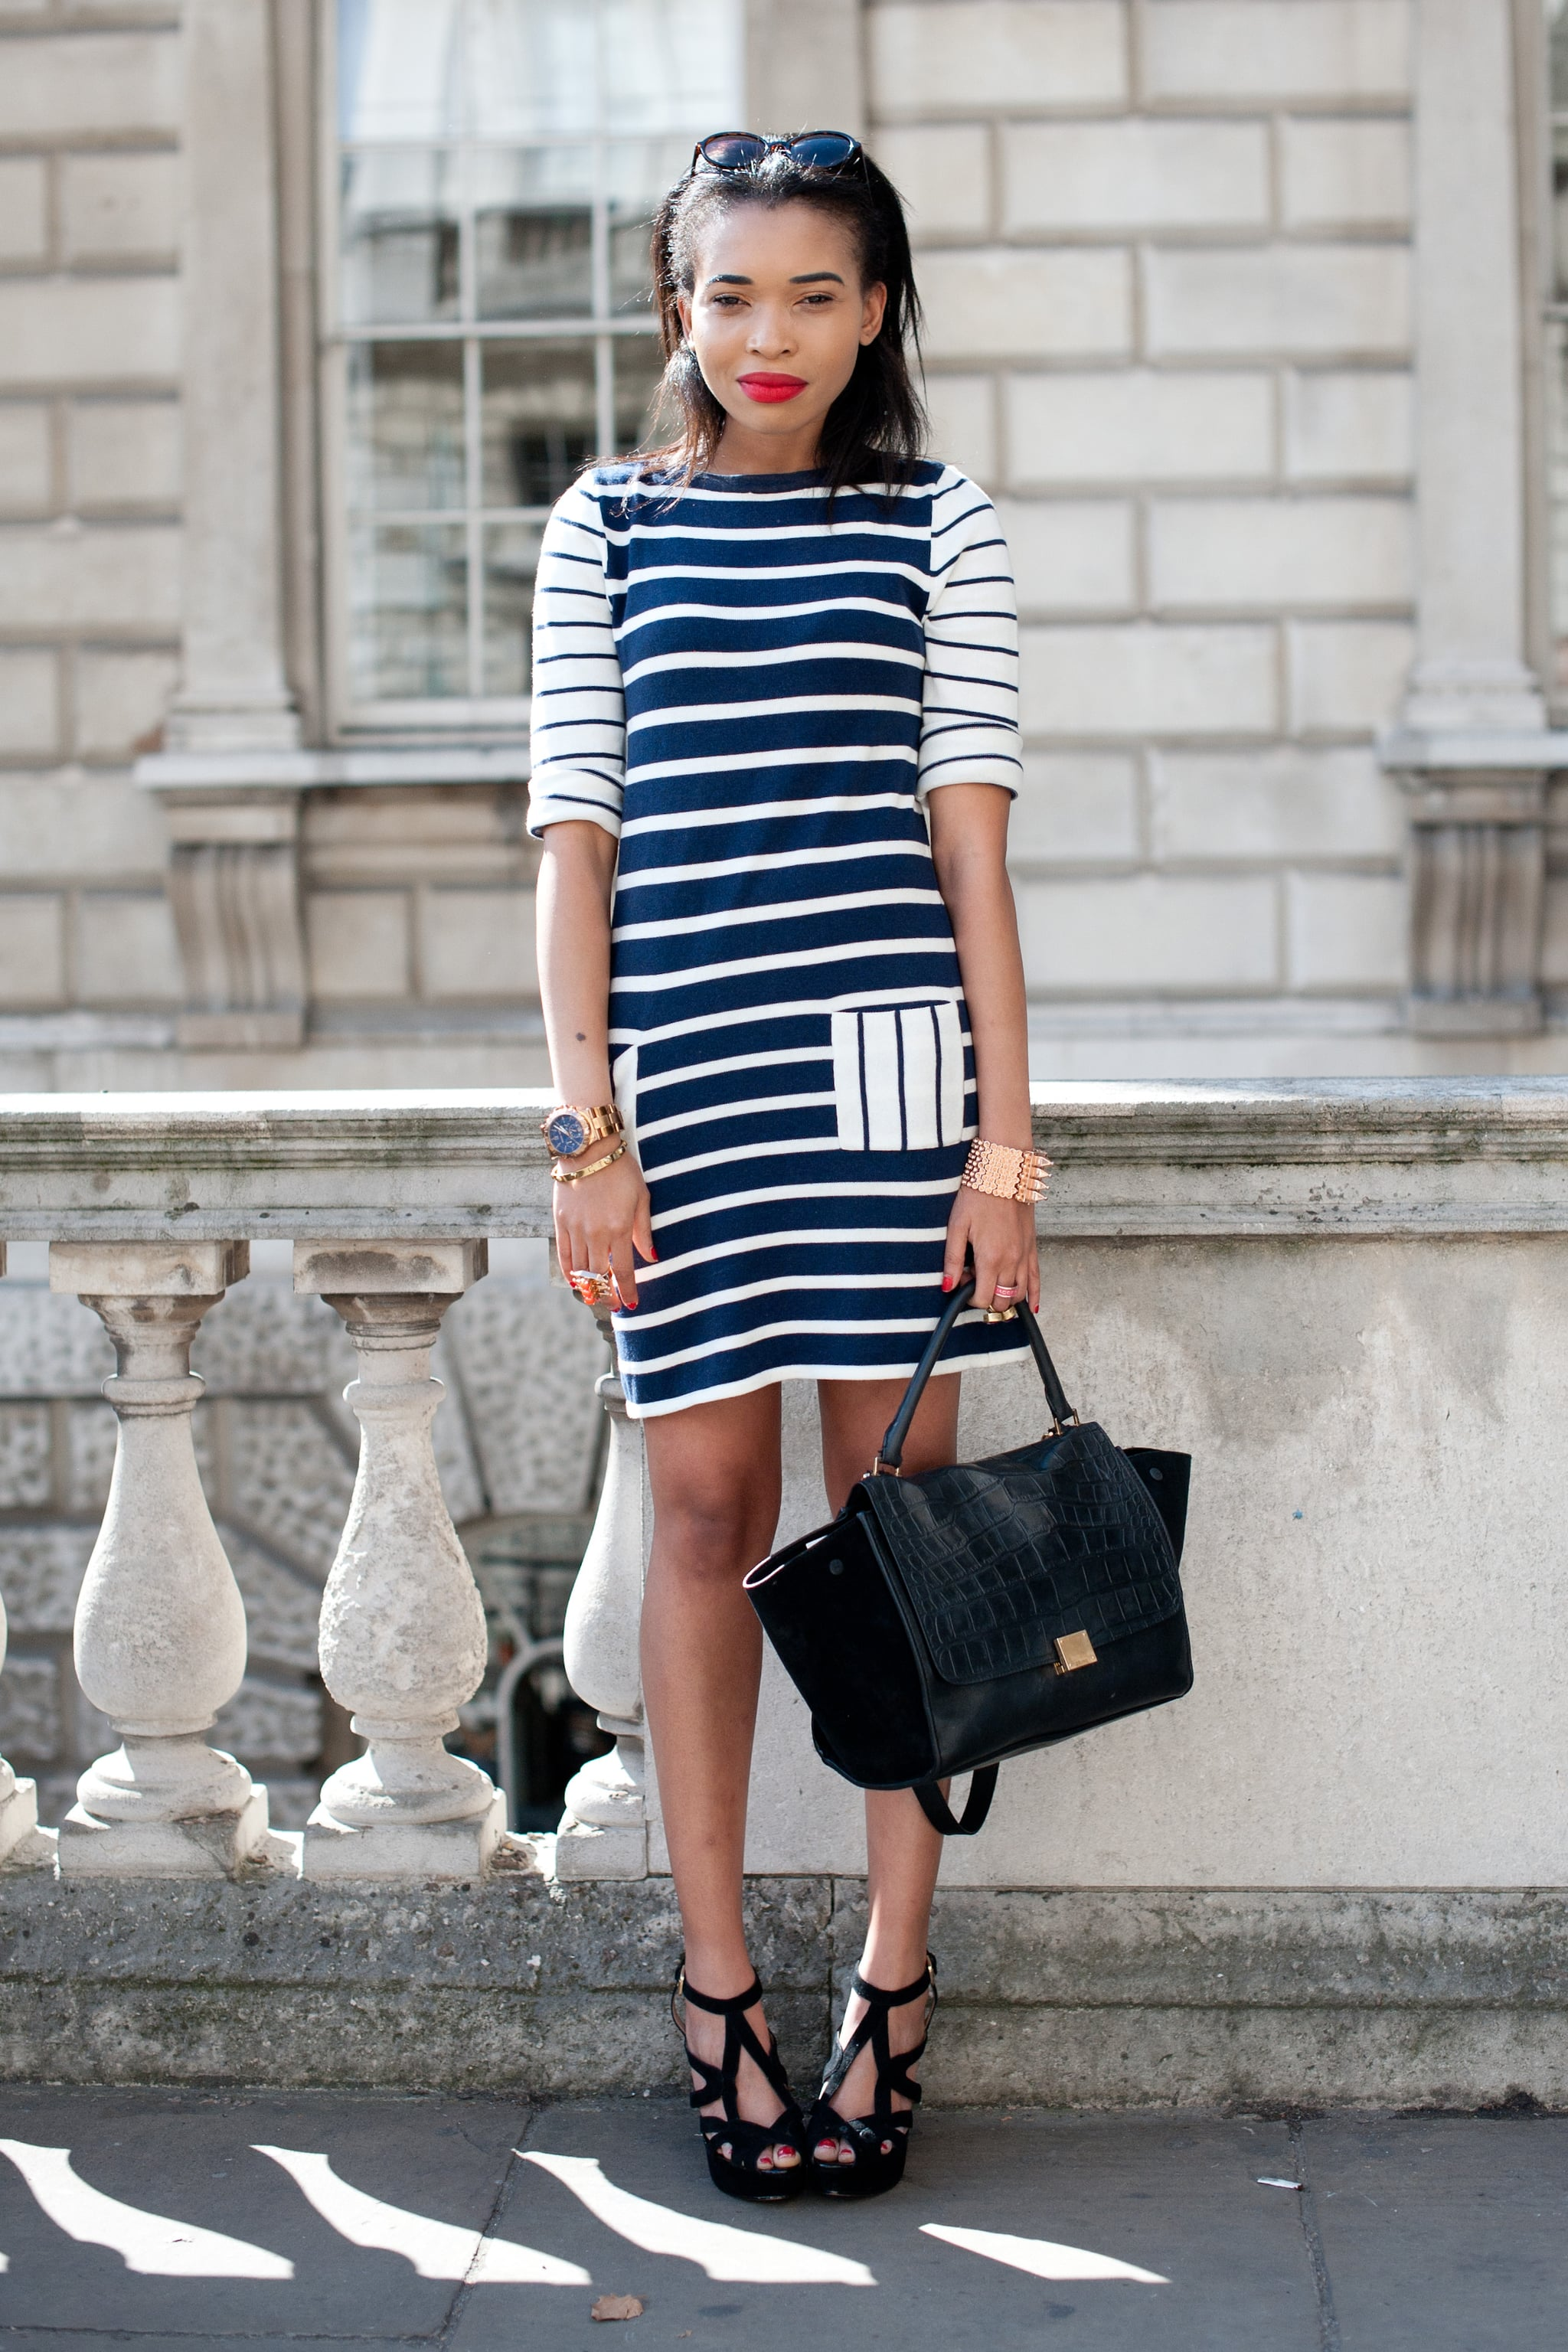 A summery nautical-striped dress gets its polished finish via a Céline bag and sexy strappy heels.